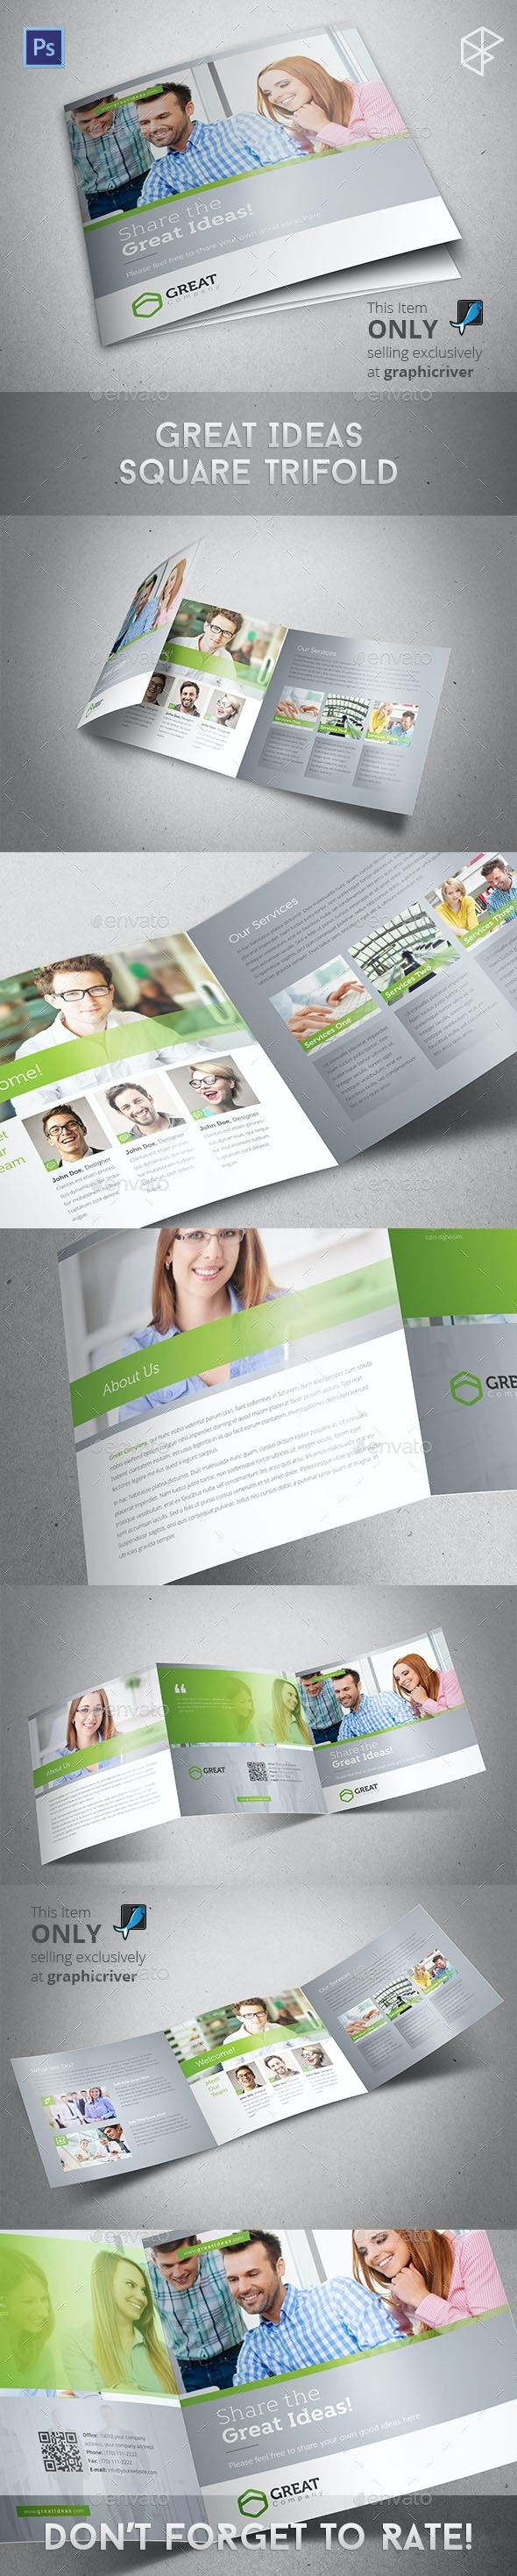 Ideas Square Trifold - Corporate Brochures